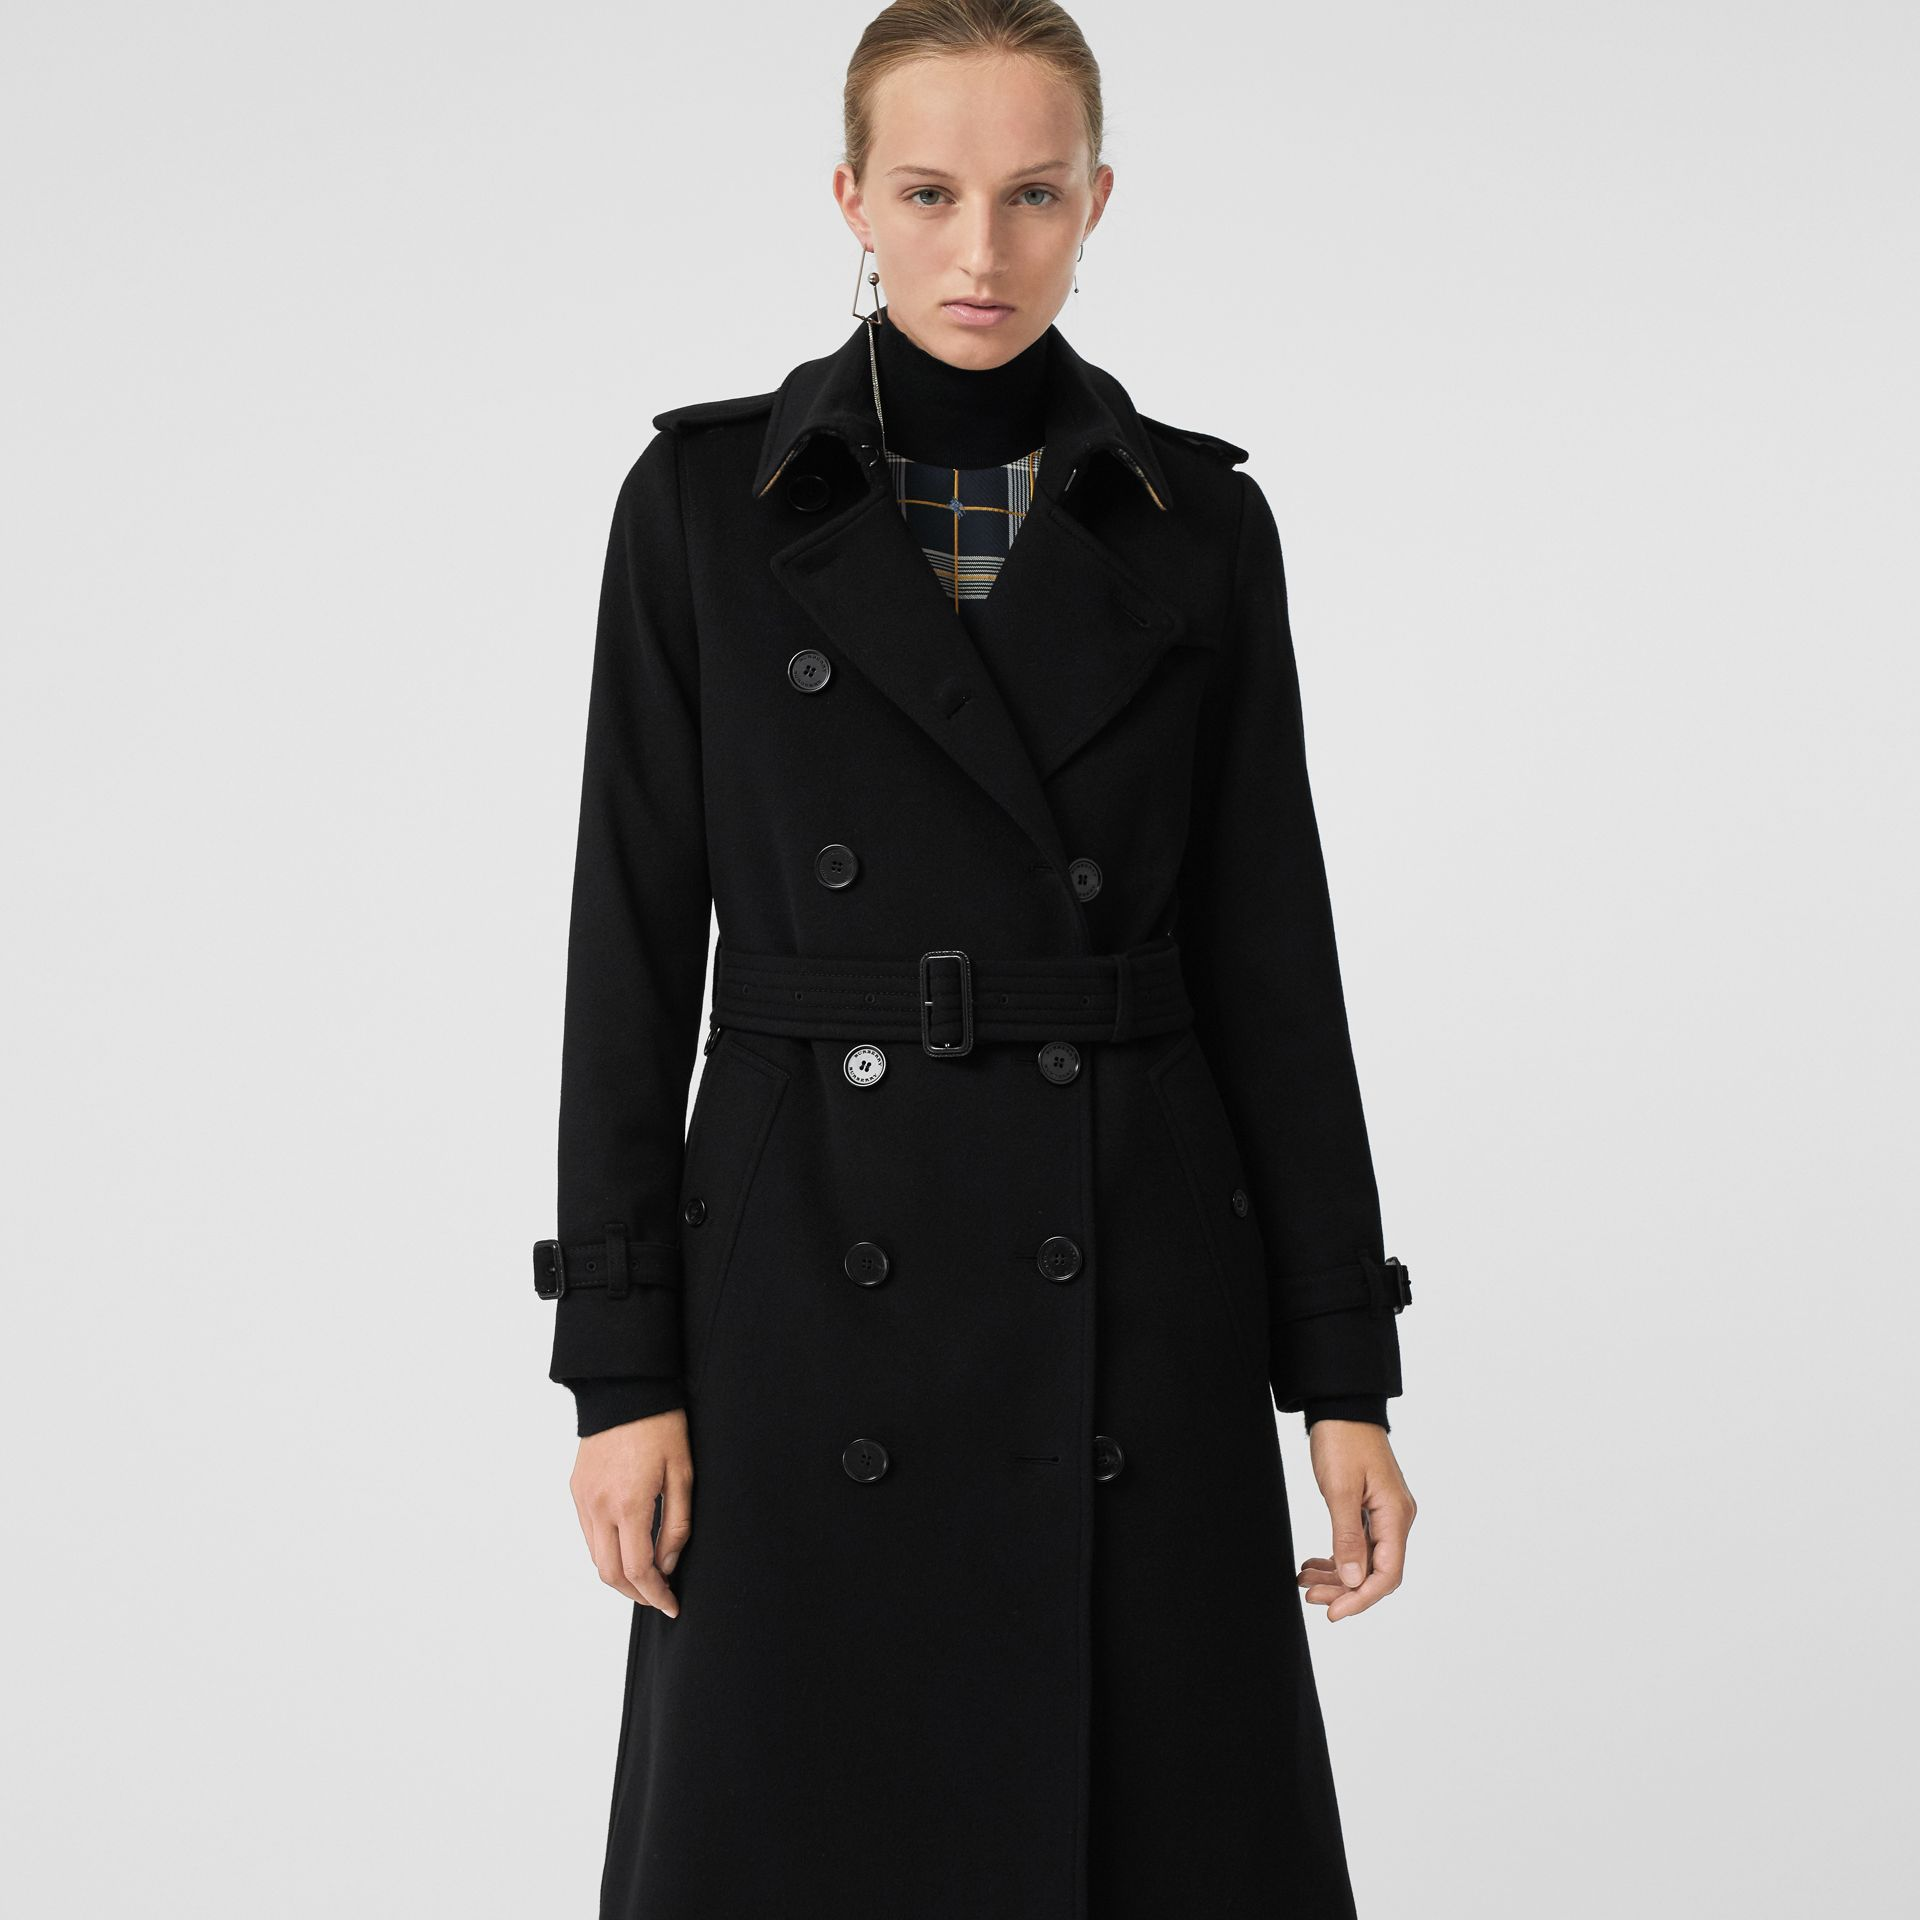 Cashmere Trench Coat in Black - Women | Burberry United Kingdom - gallery image 6